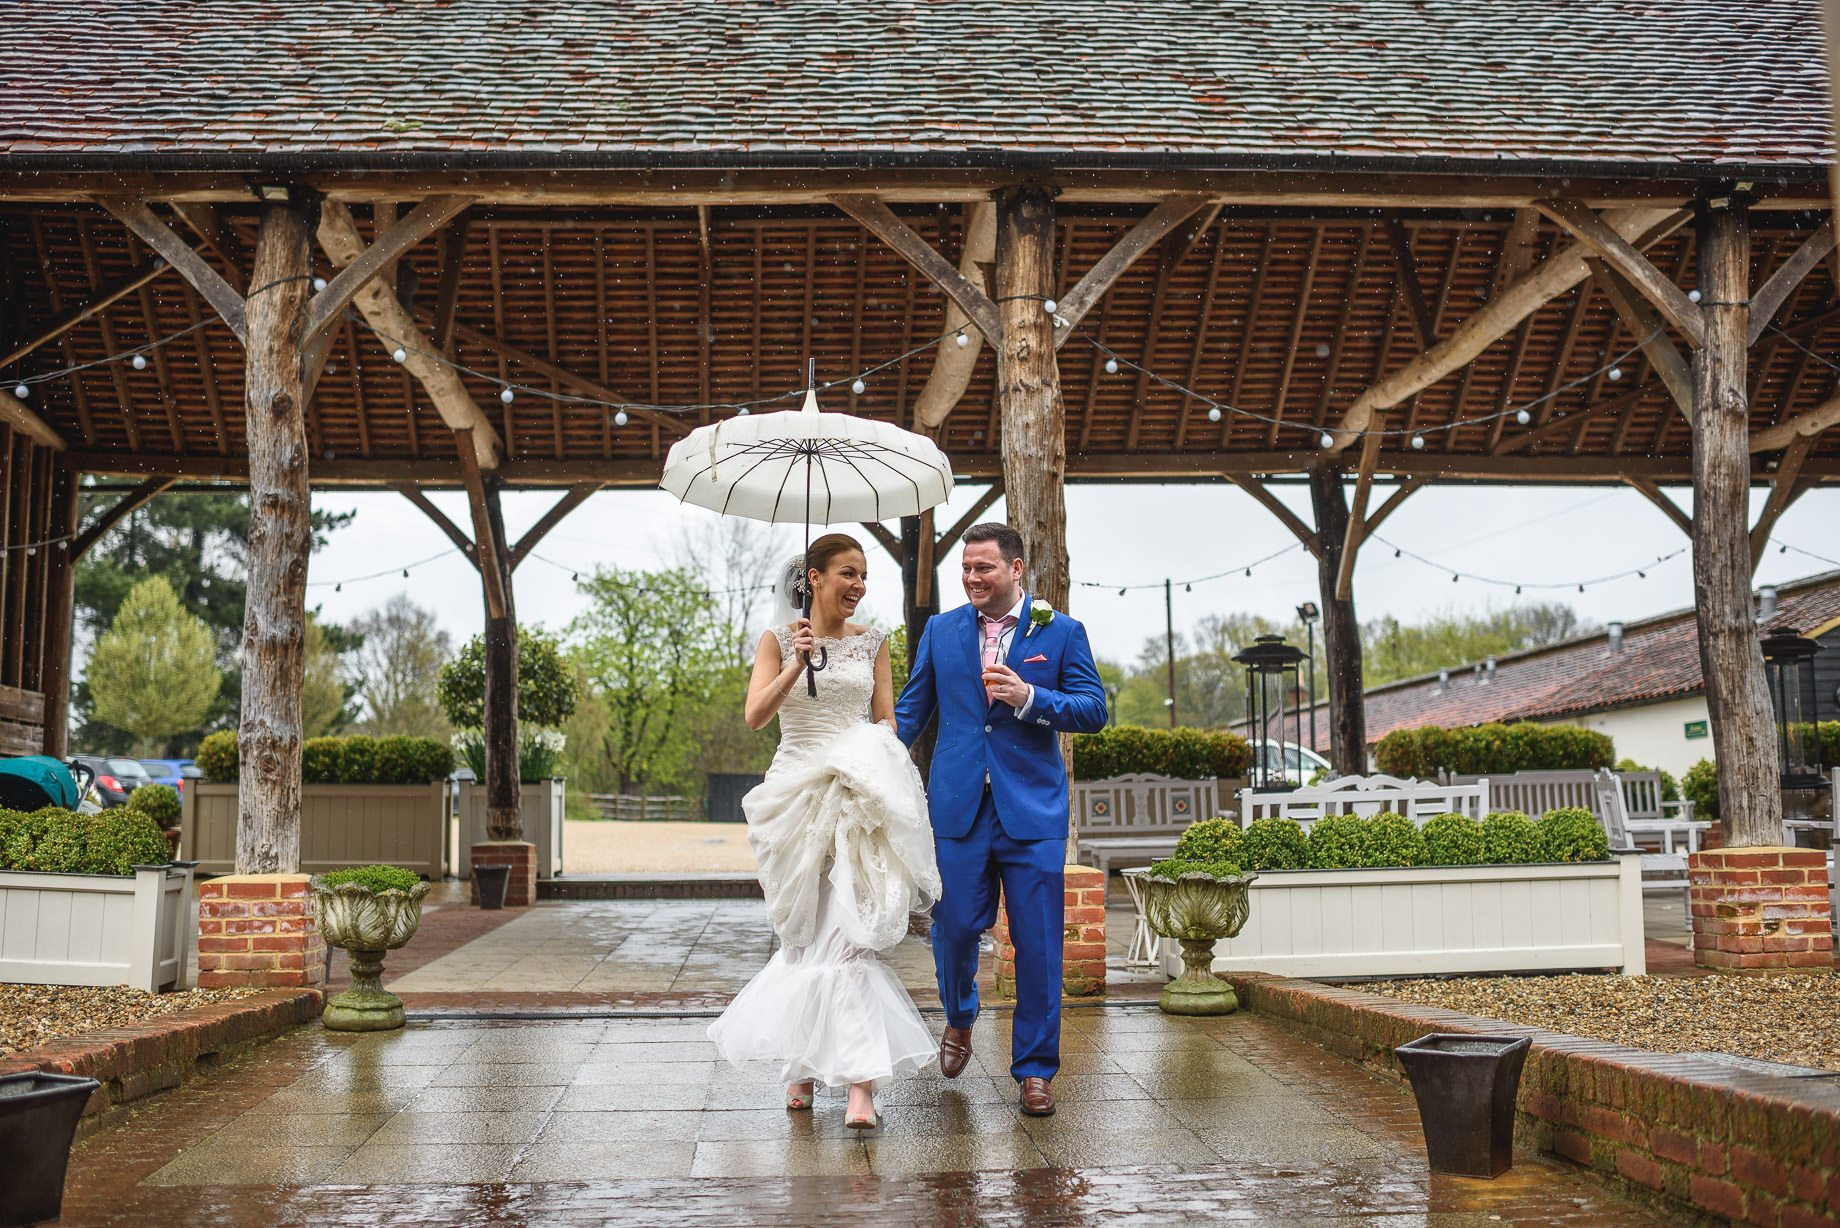 Best wedding photography by Guy Collier - Sheri and Chris (83 of 121)